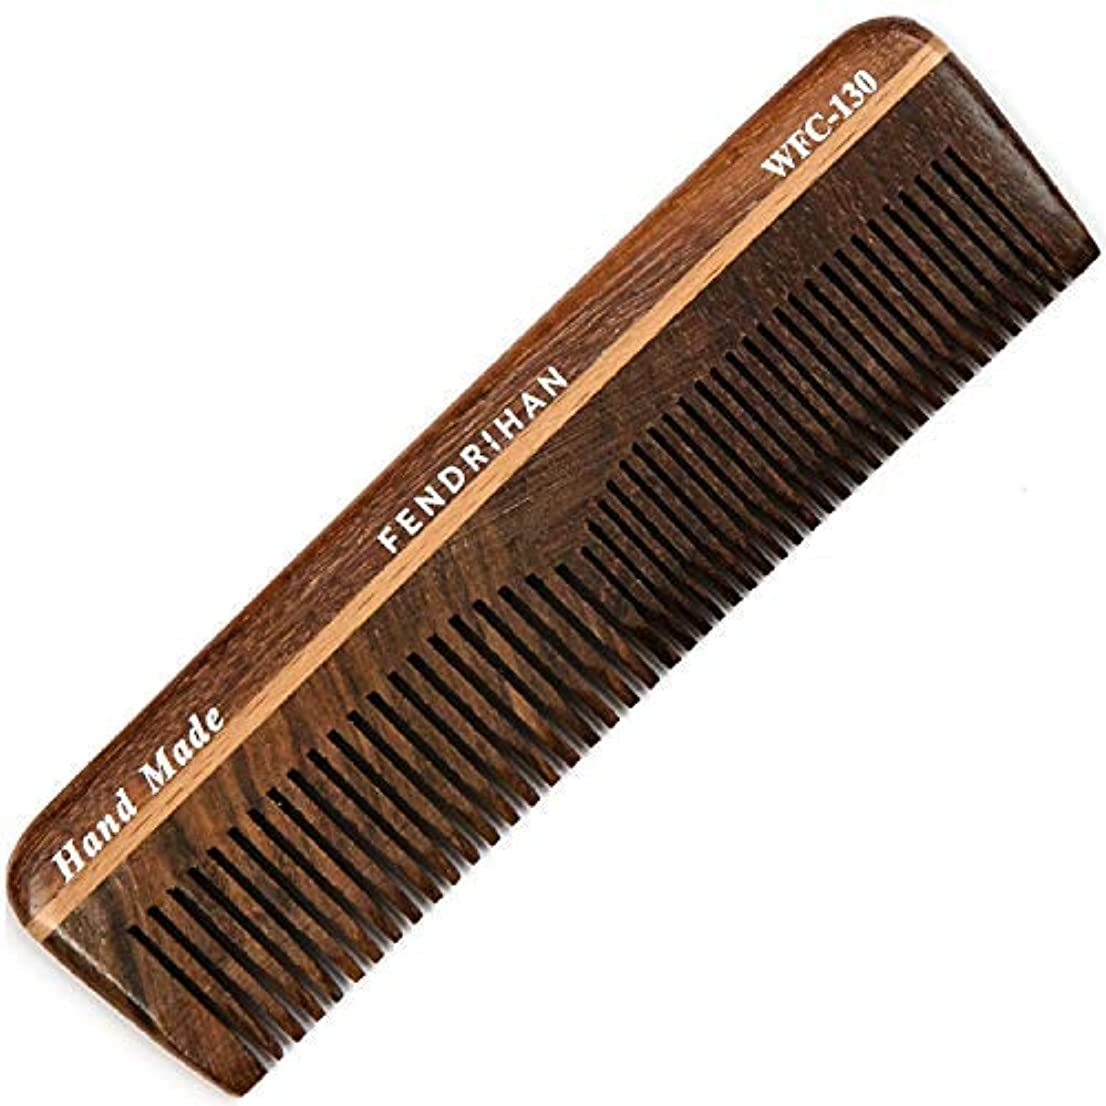 スローガンマージン床Fendrihan Wooden Double-Tooth Pocket Barber Grooming Comb (5.1 Inches) [並行輸入品]